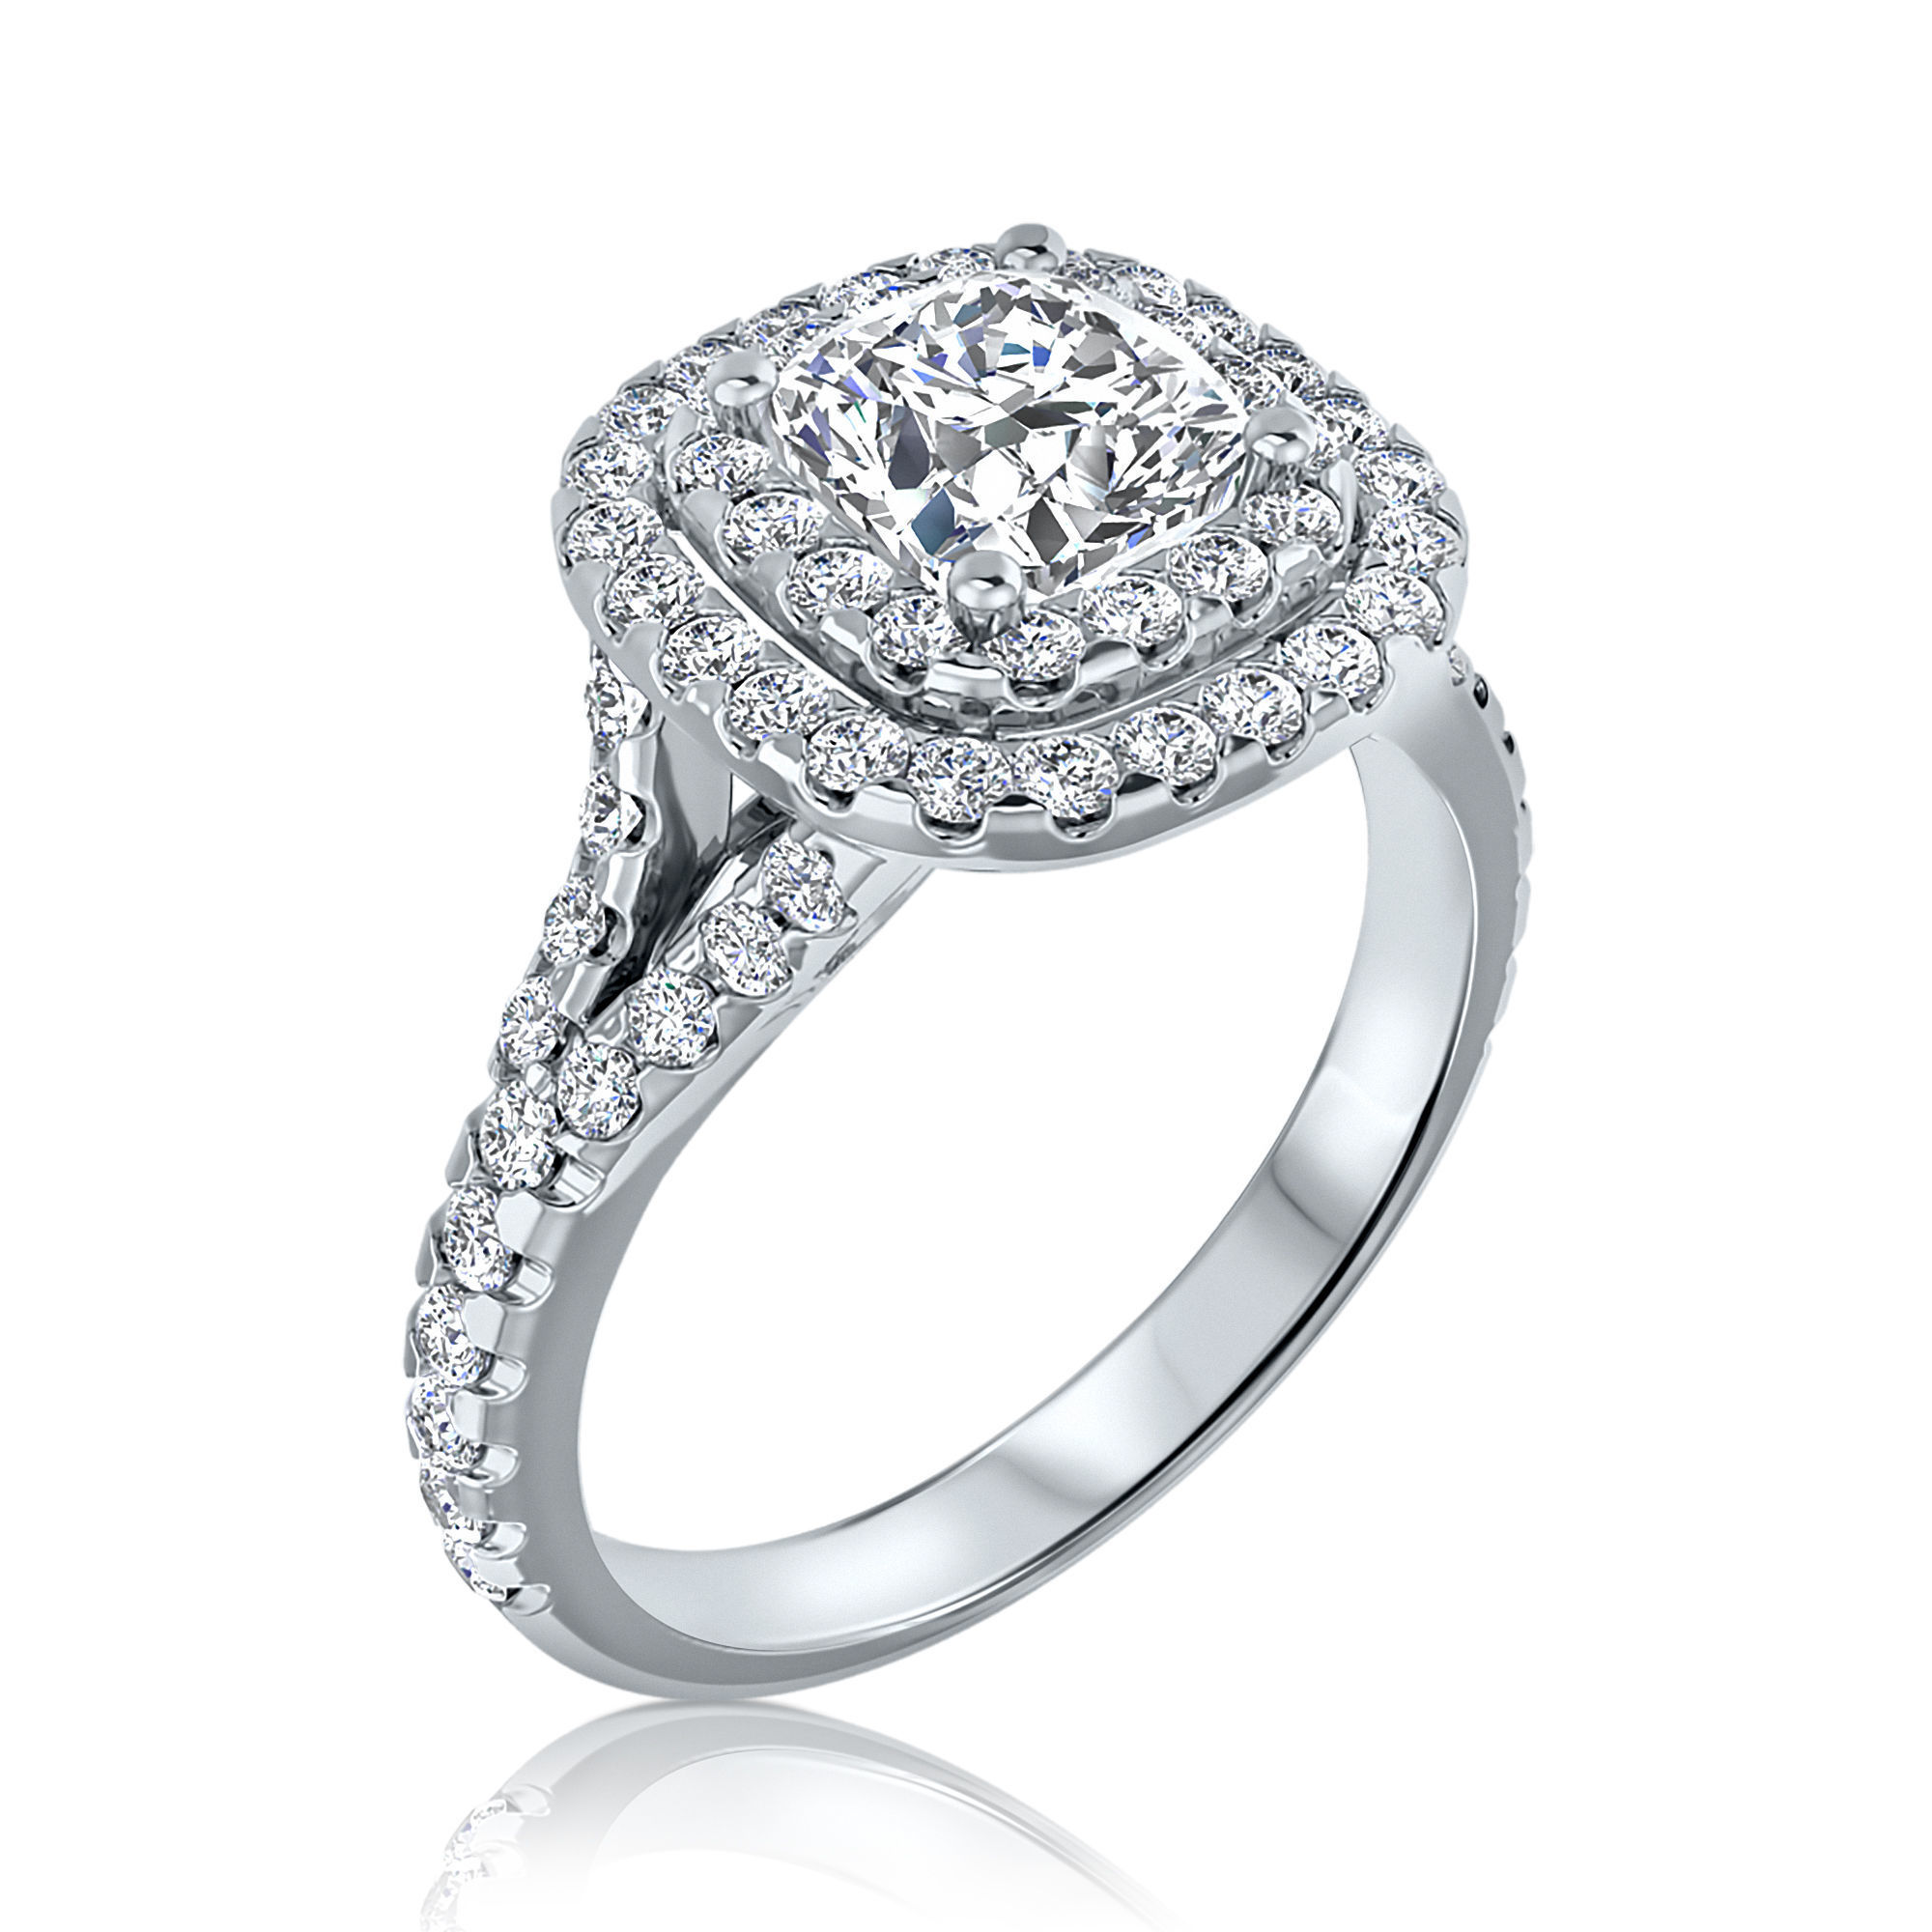 ENGAGEMENT RING 2 ROWS